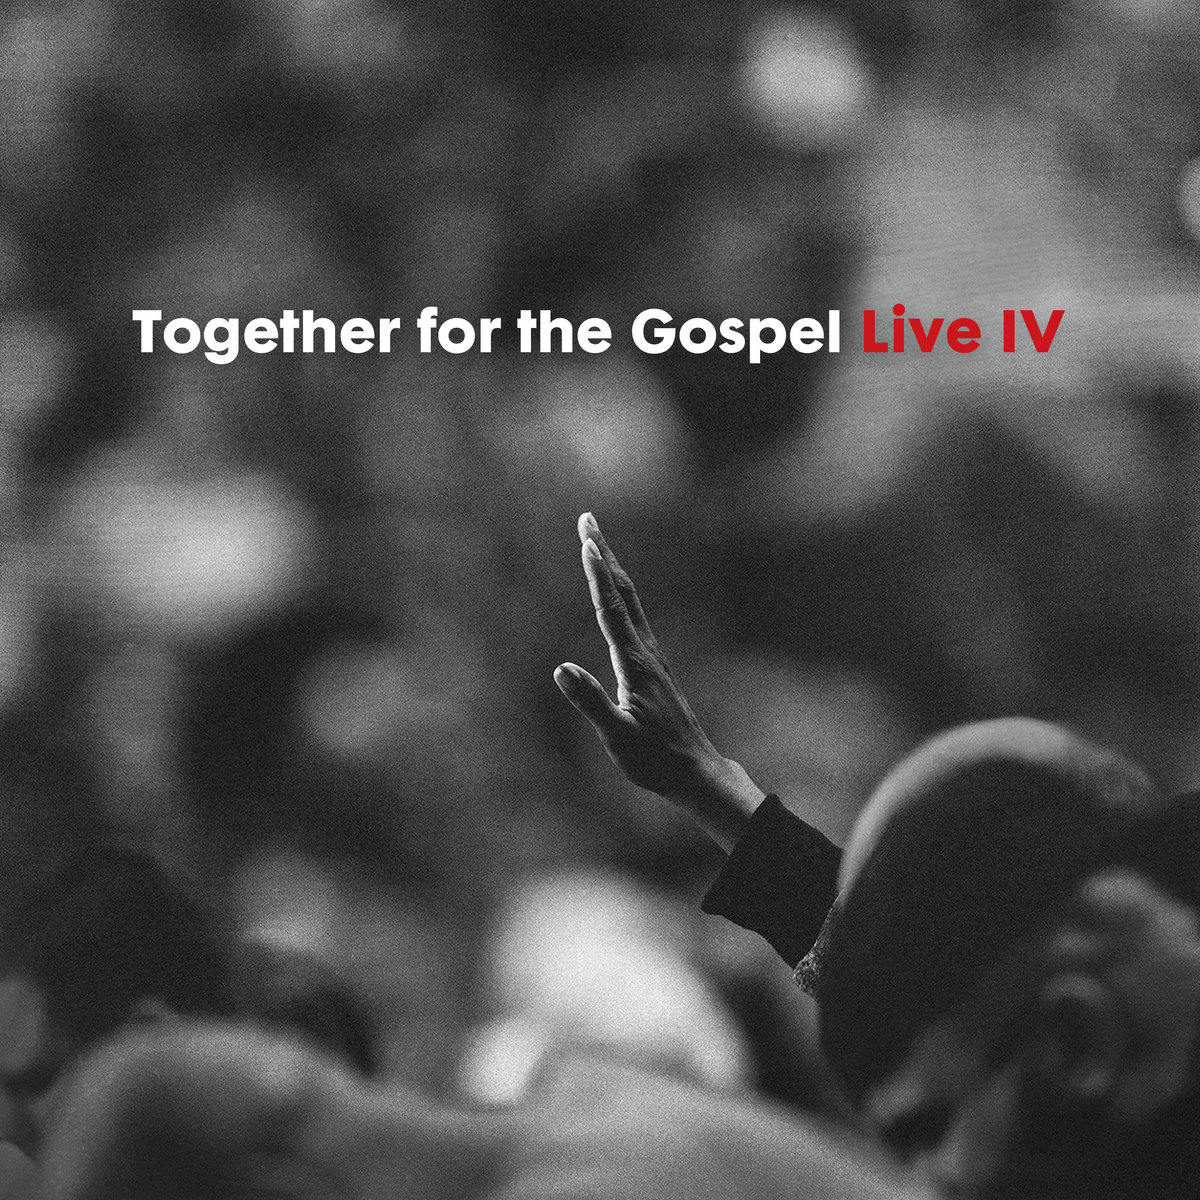 Together for the Gospel Live IV | Sovereign Grace Music